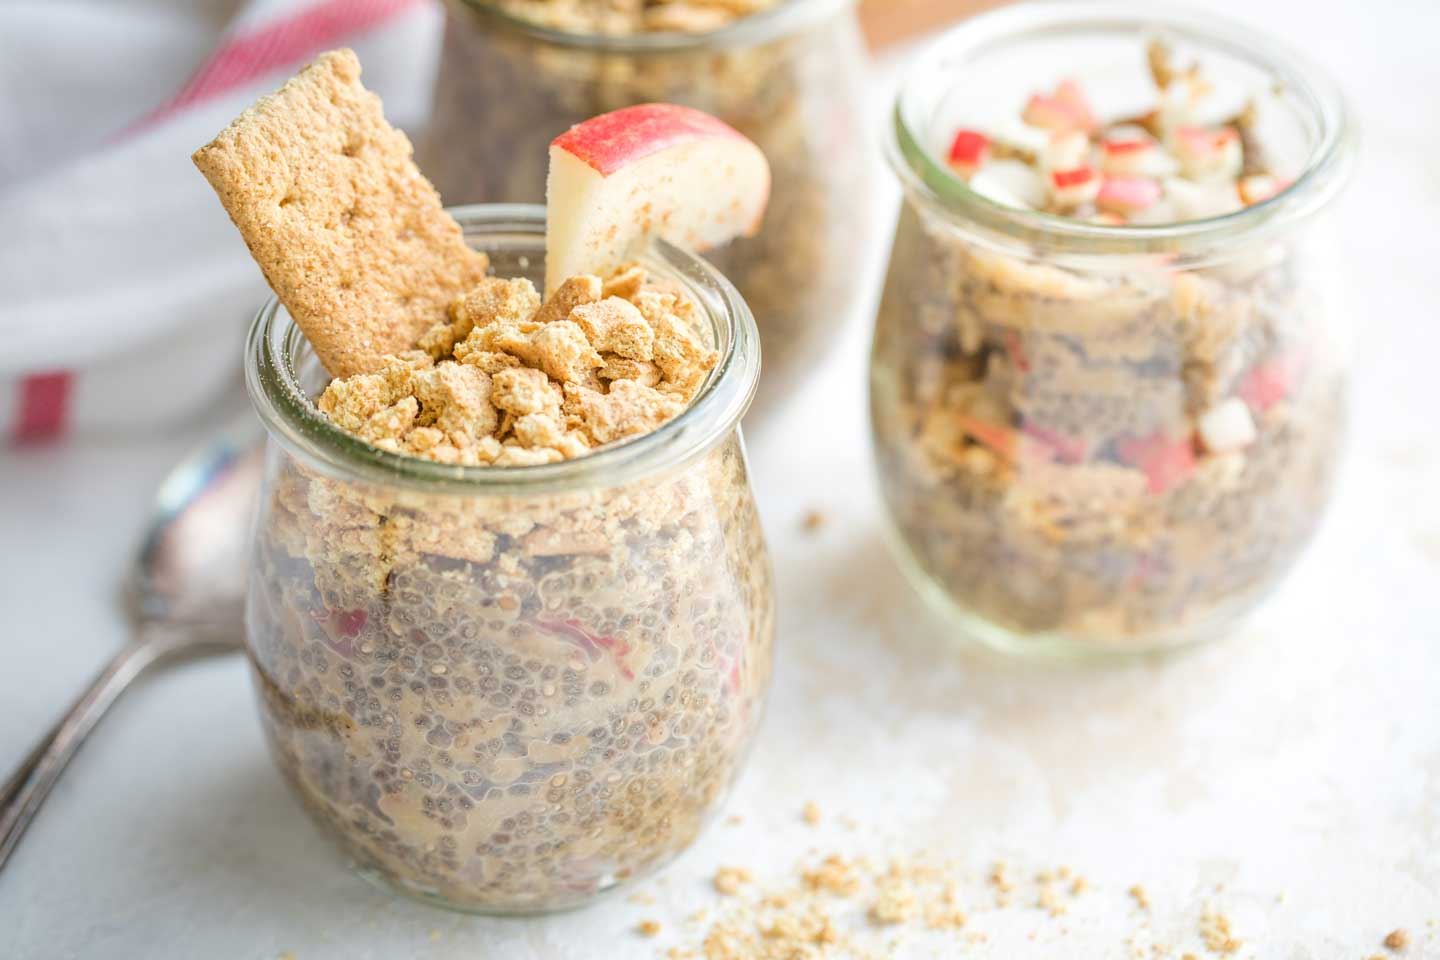 various jars of ready-to-eat, make-ahead chia pudding breakfasts, with a spoon at the ready and a few crumbles of graham cracker nearby